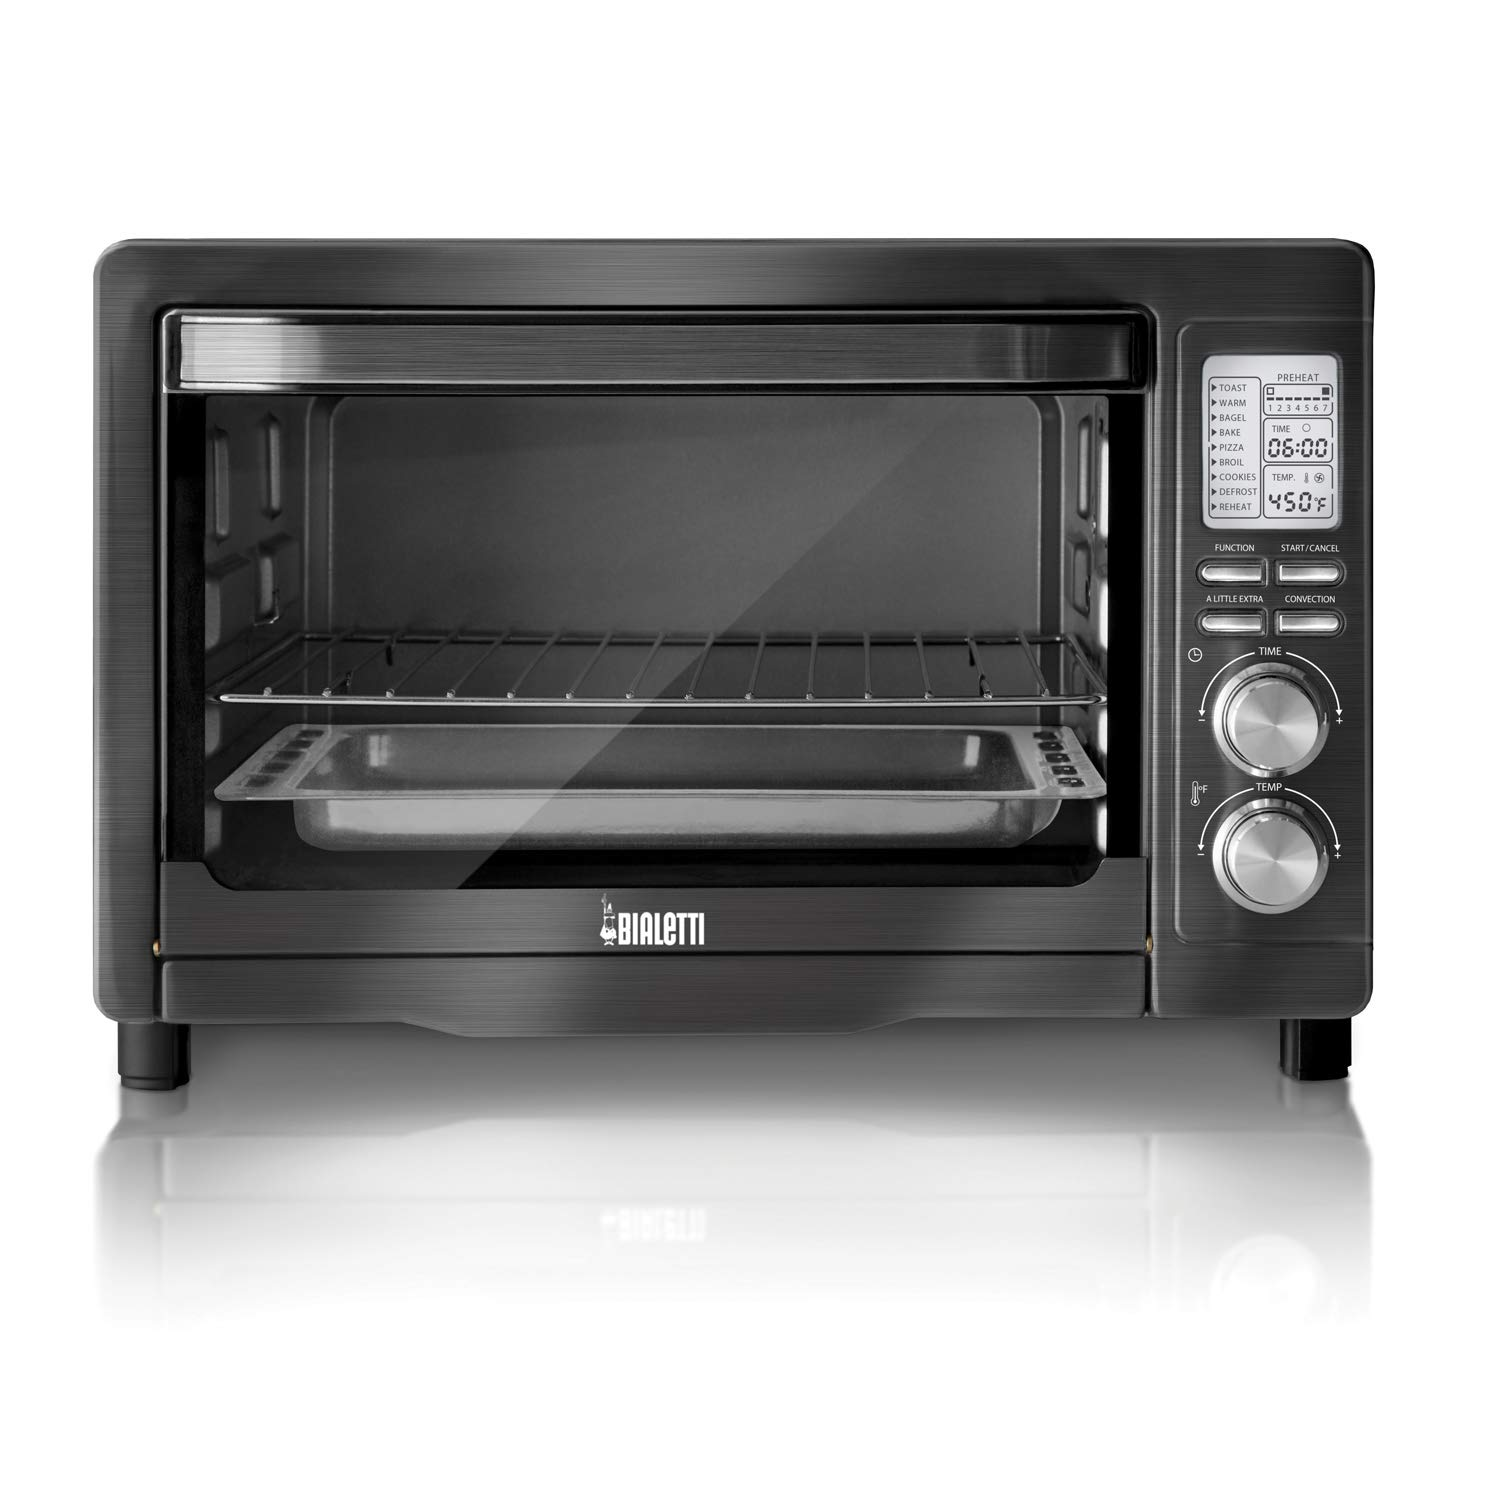 Bialetti (35047) 6-Slice Convection Toaster Oven, Black Stainless Steel by Bialetti